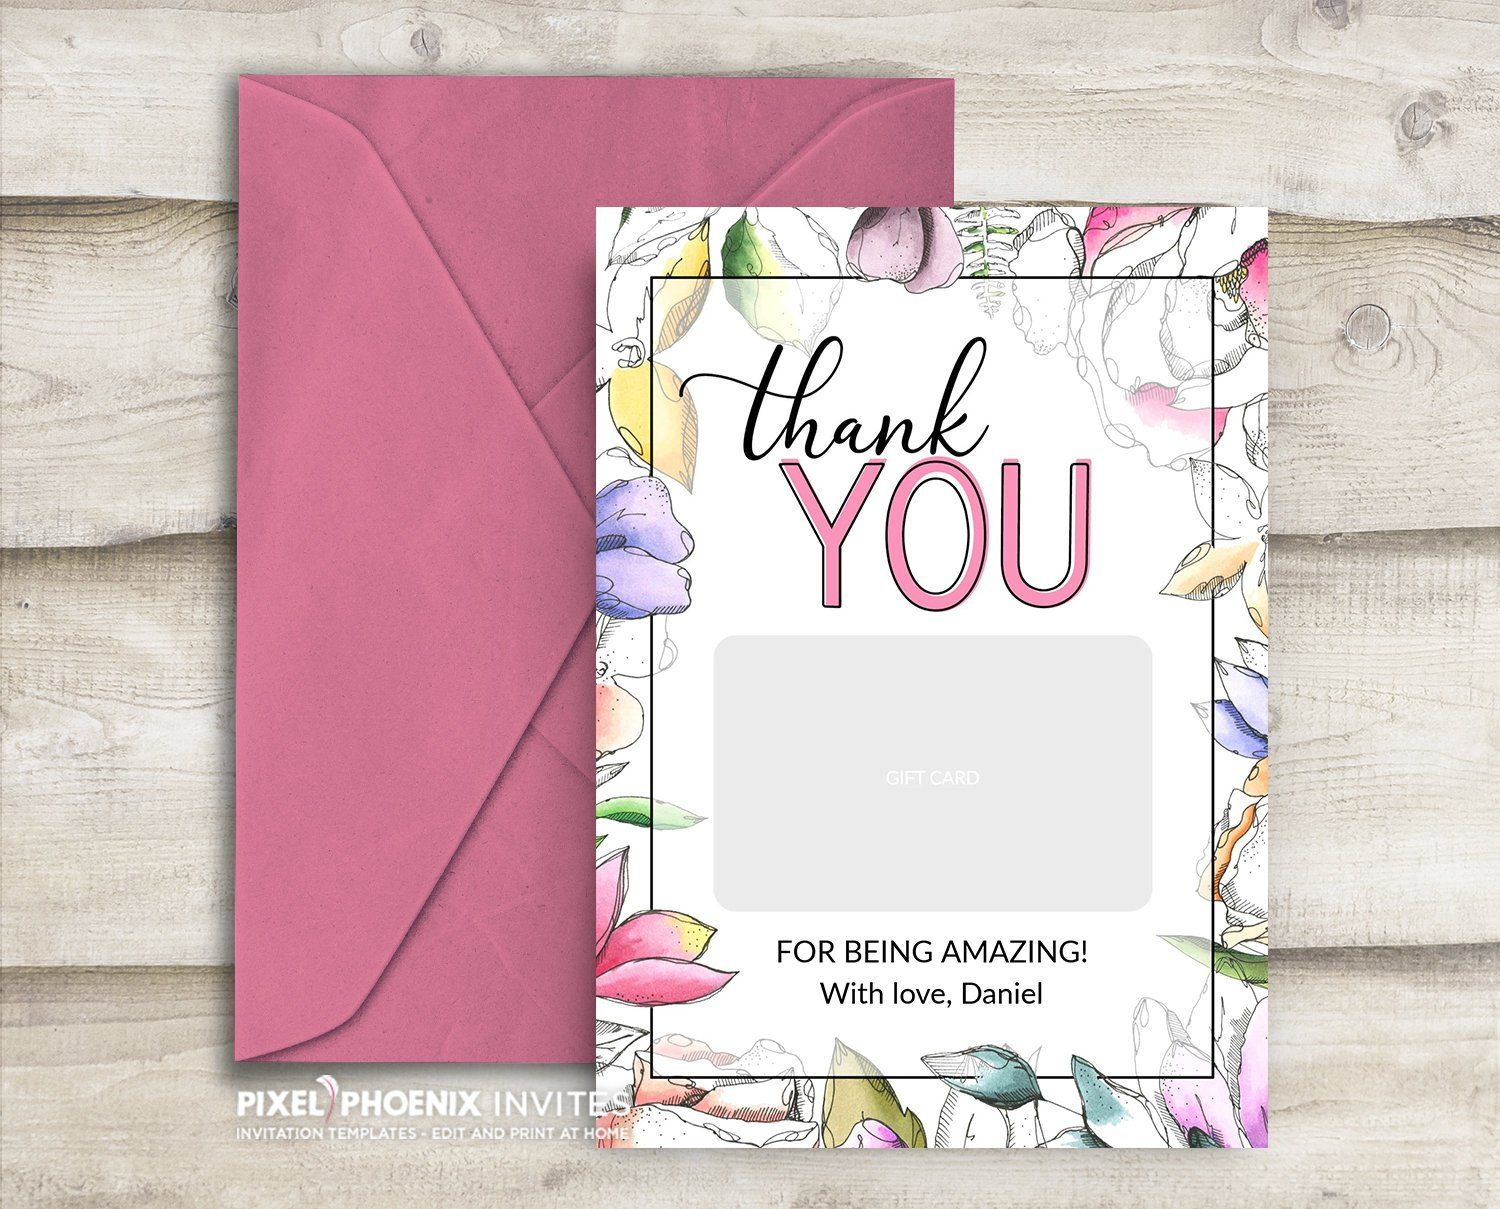 Gift Card Holder Teacher Appreciation Gift Teacher Thank You Card Coach Gift Graduation Teacher Thank You Cards Gift Card Holder Gift Card Holder Template